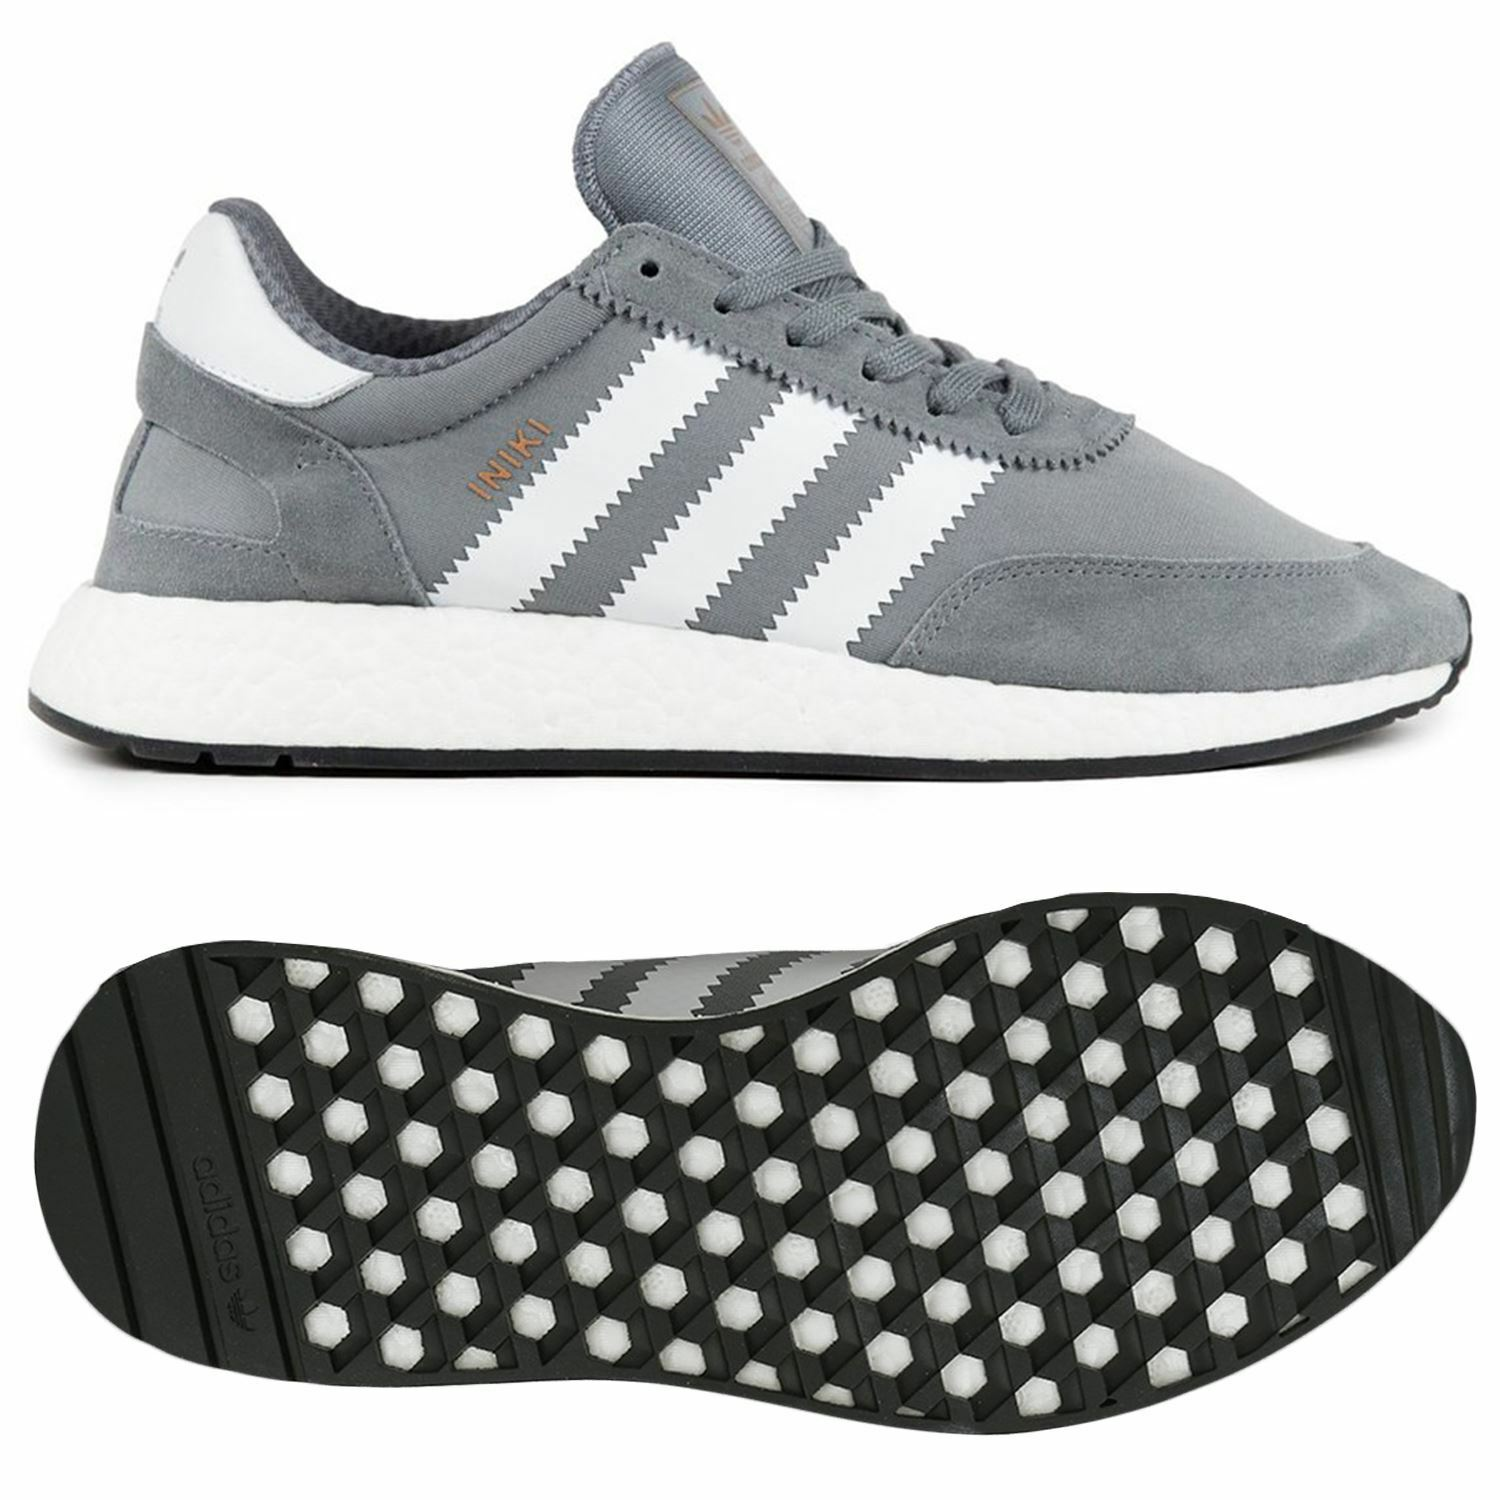 adidas ORIGINALS INIKI RUNNER TRAINERS UNISEX GREY RETRO VINTAGE FITNESS B GRADE